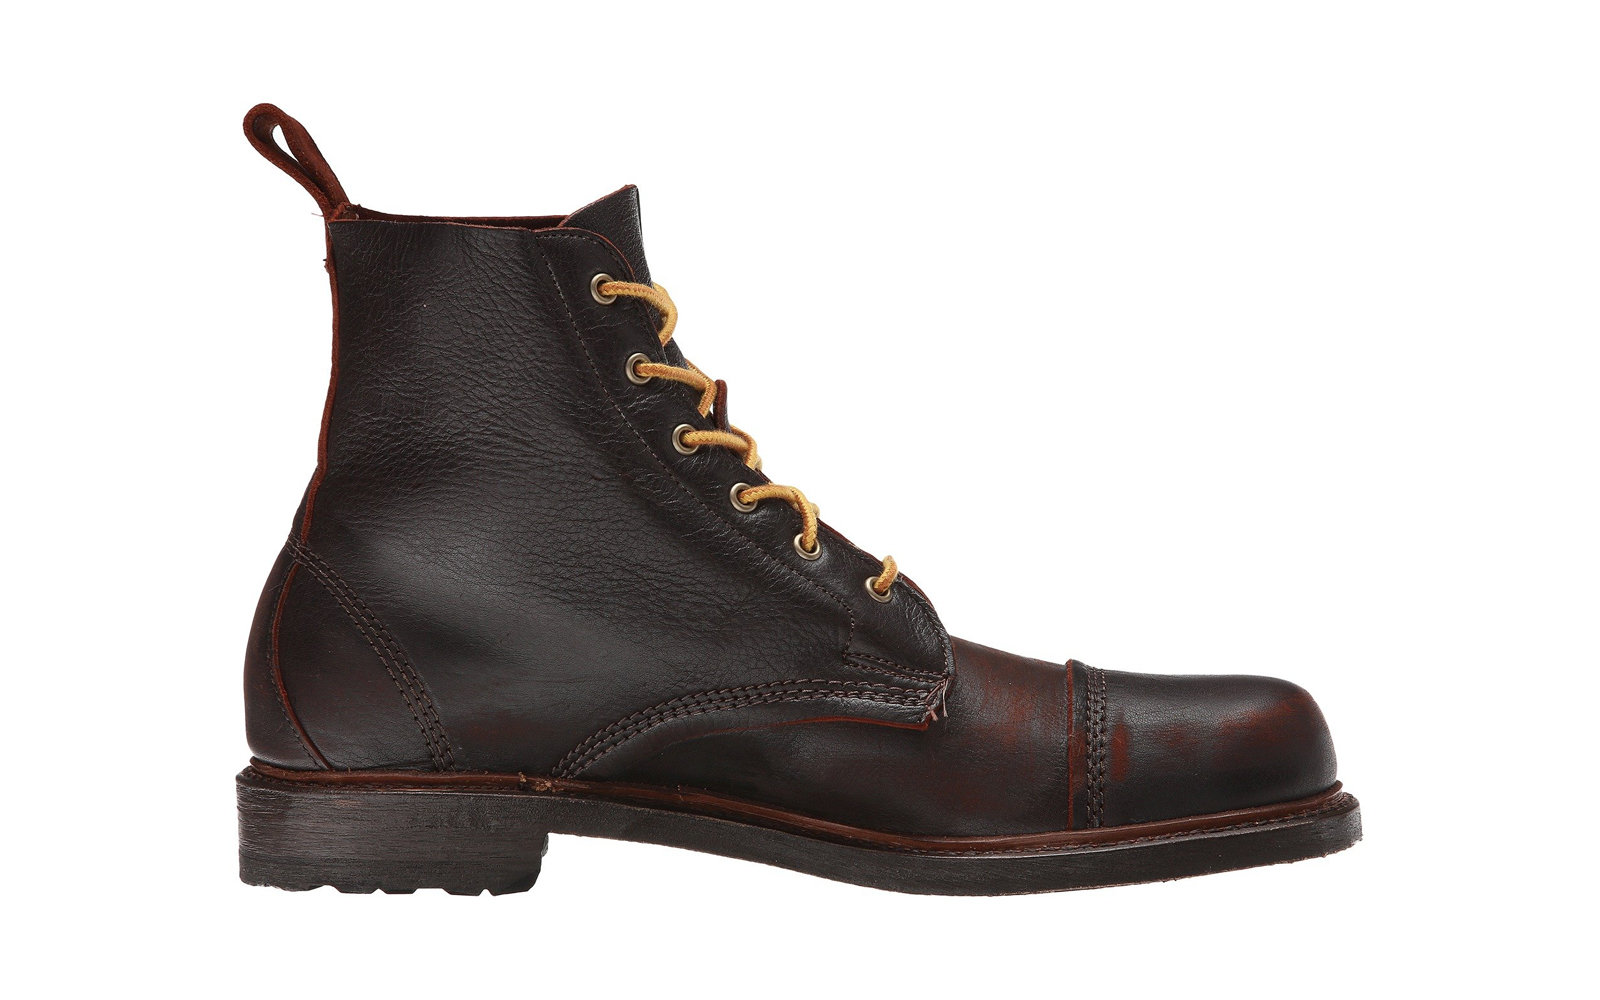 Best Winter Boots: Allen Edmonds Normandy